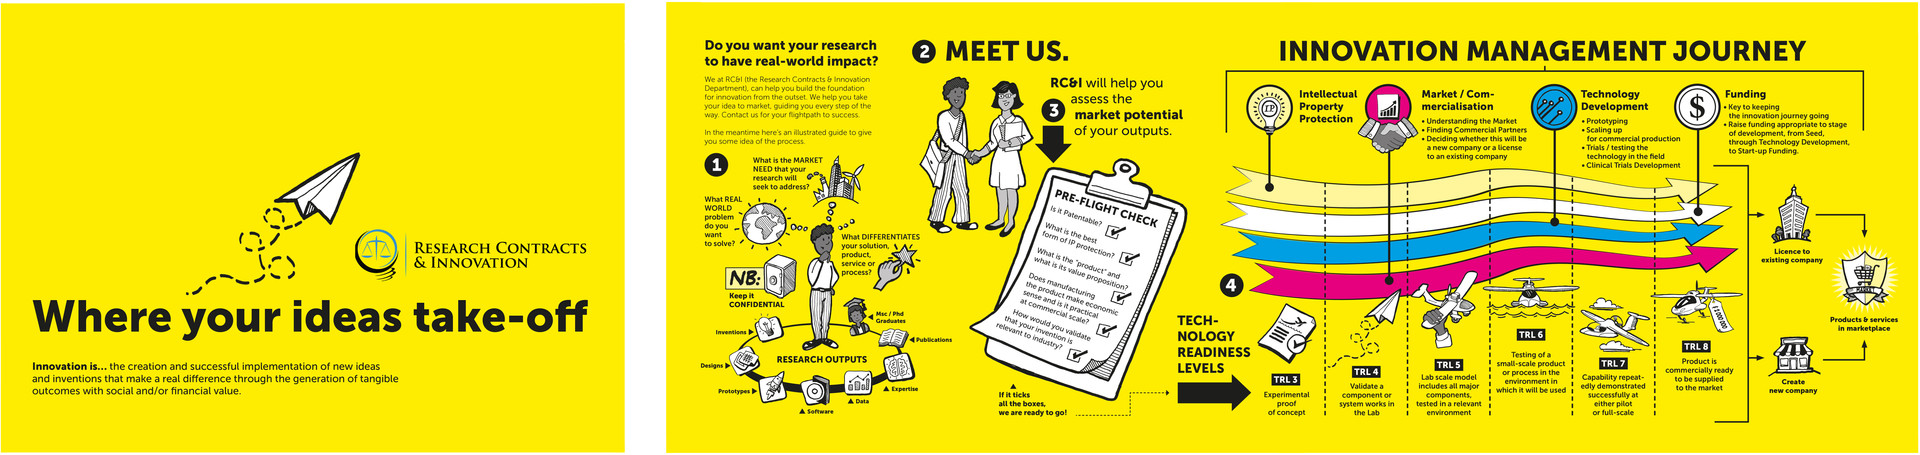 UCT Research Contracts & Innovation Brochure